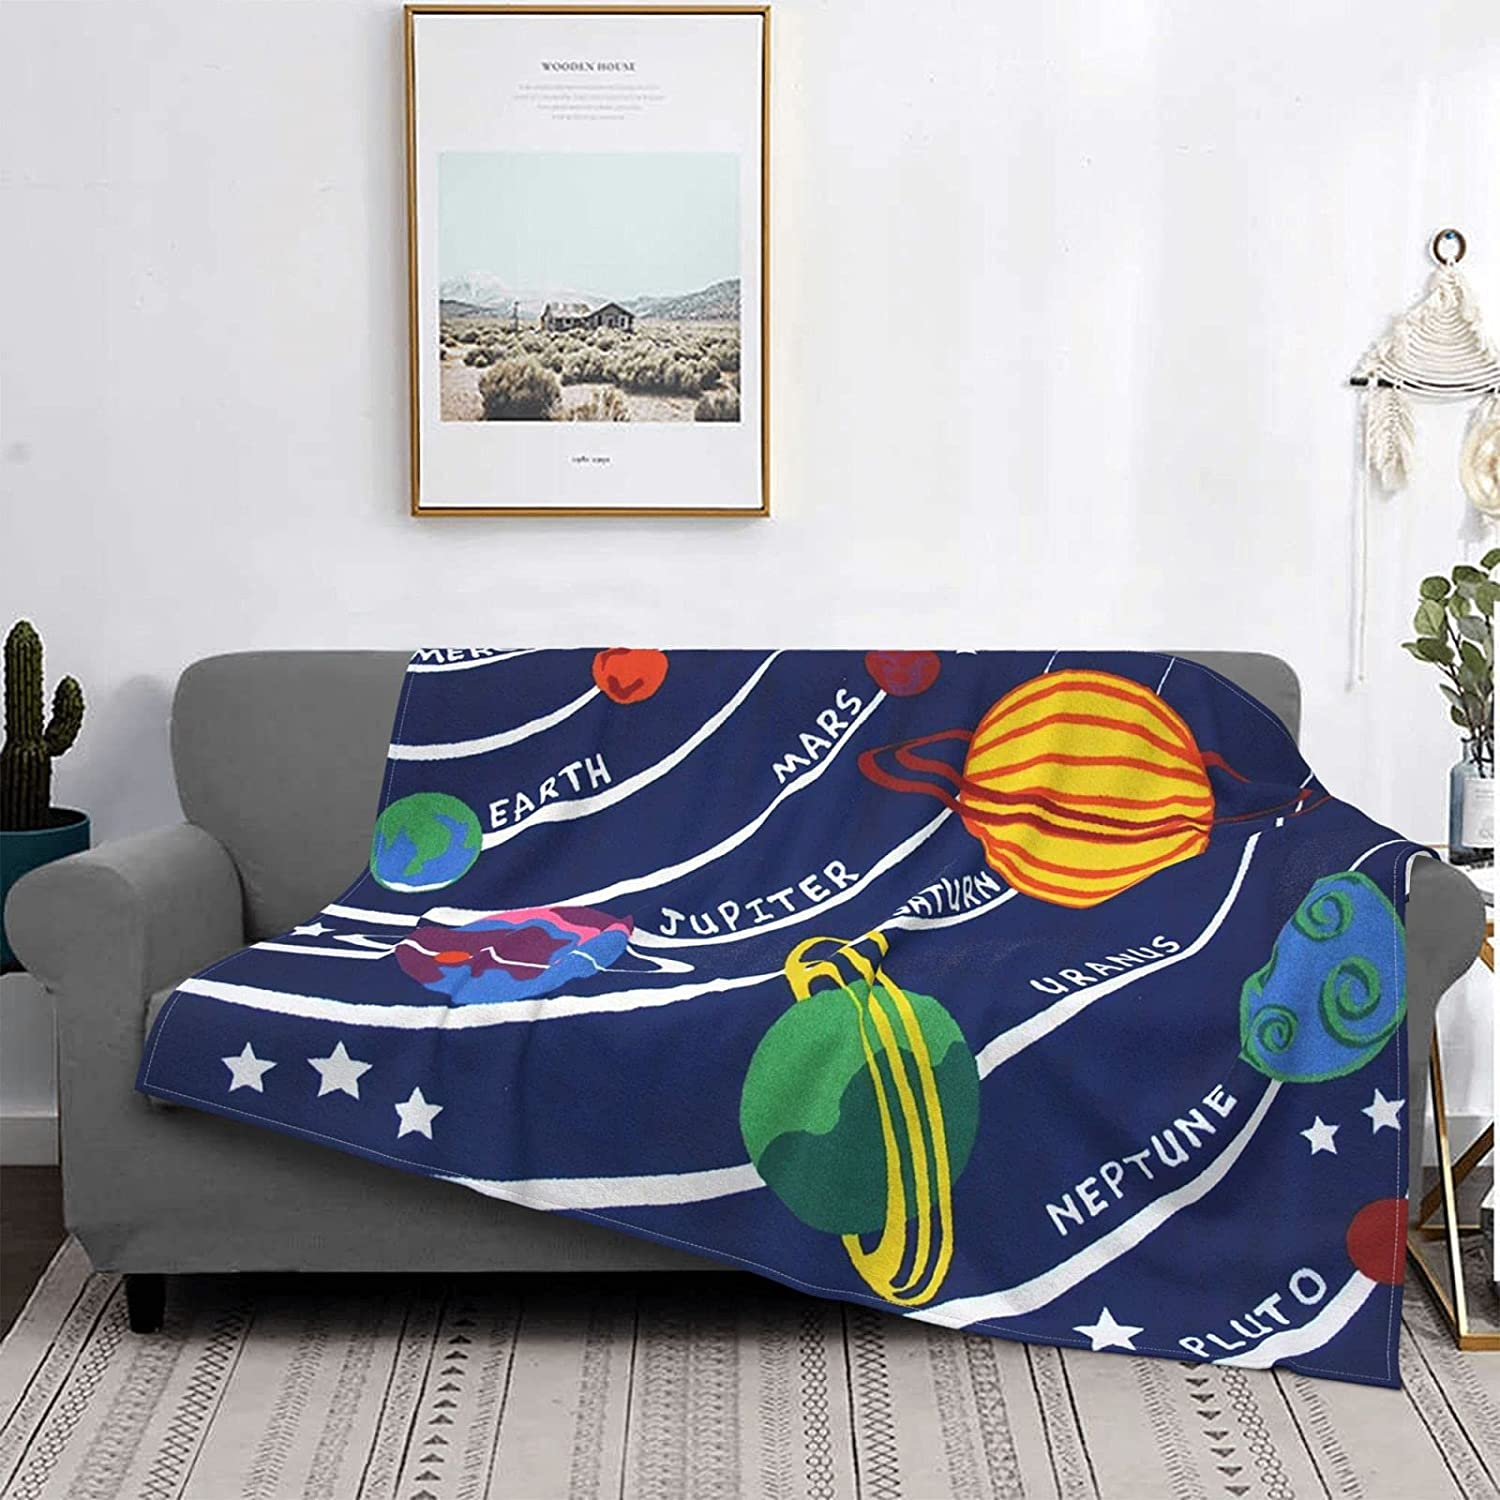 Solar Systems Sales results No. 1 Throw Blankets Lightweight wholesale Flannel Warm B Camping